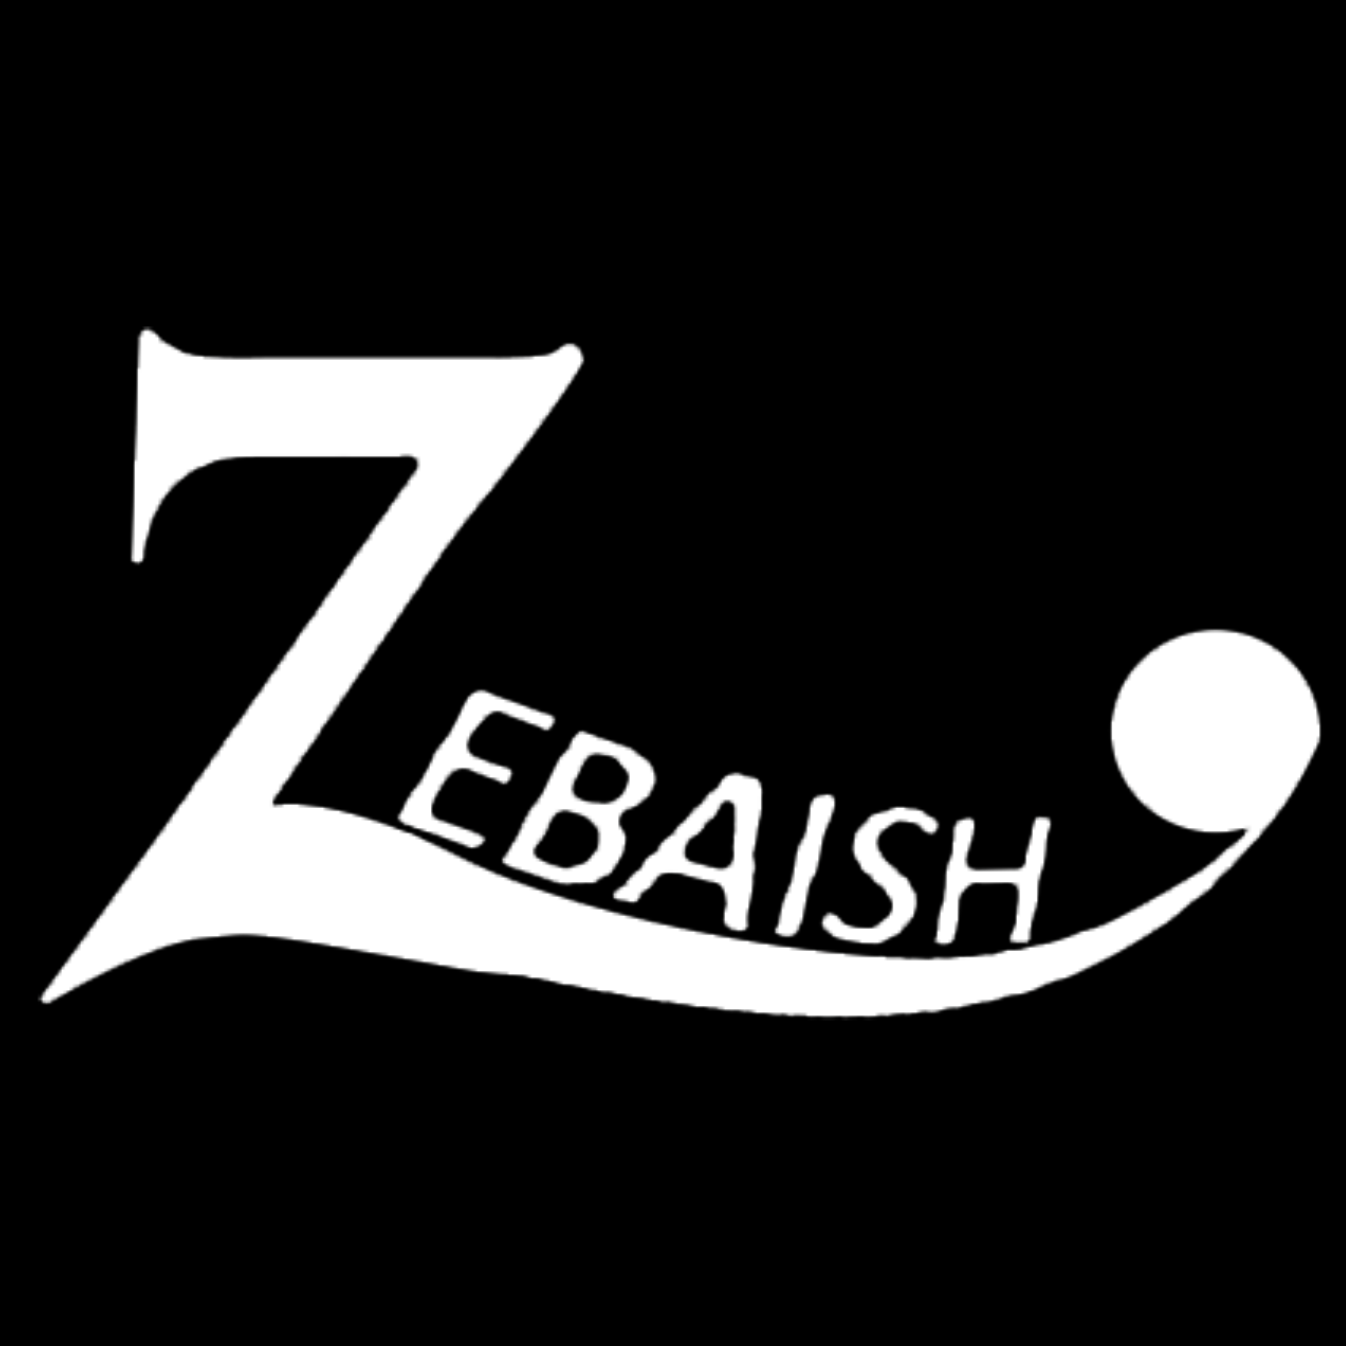 Zebaish By Sherry